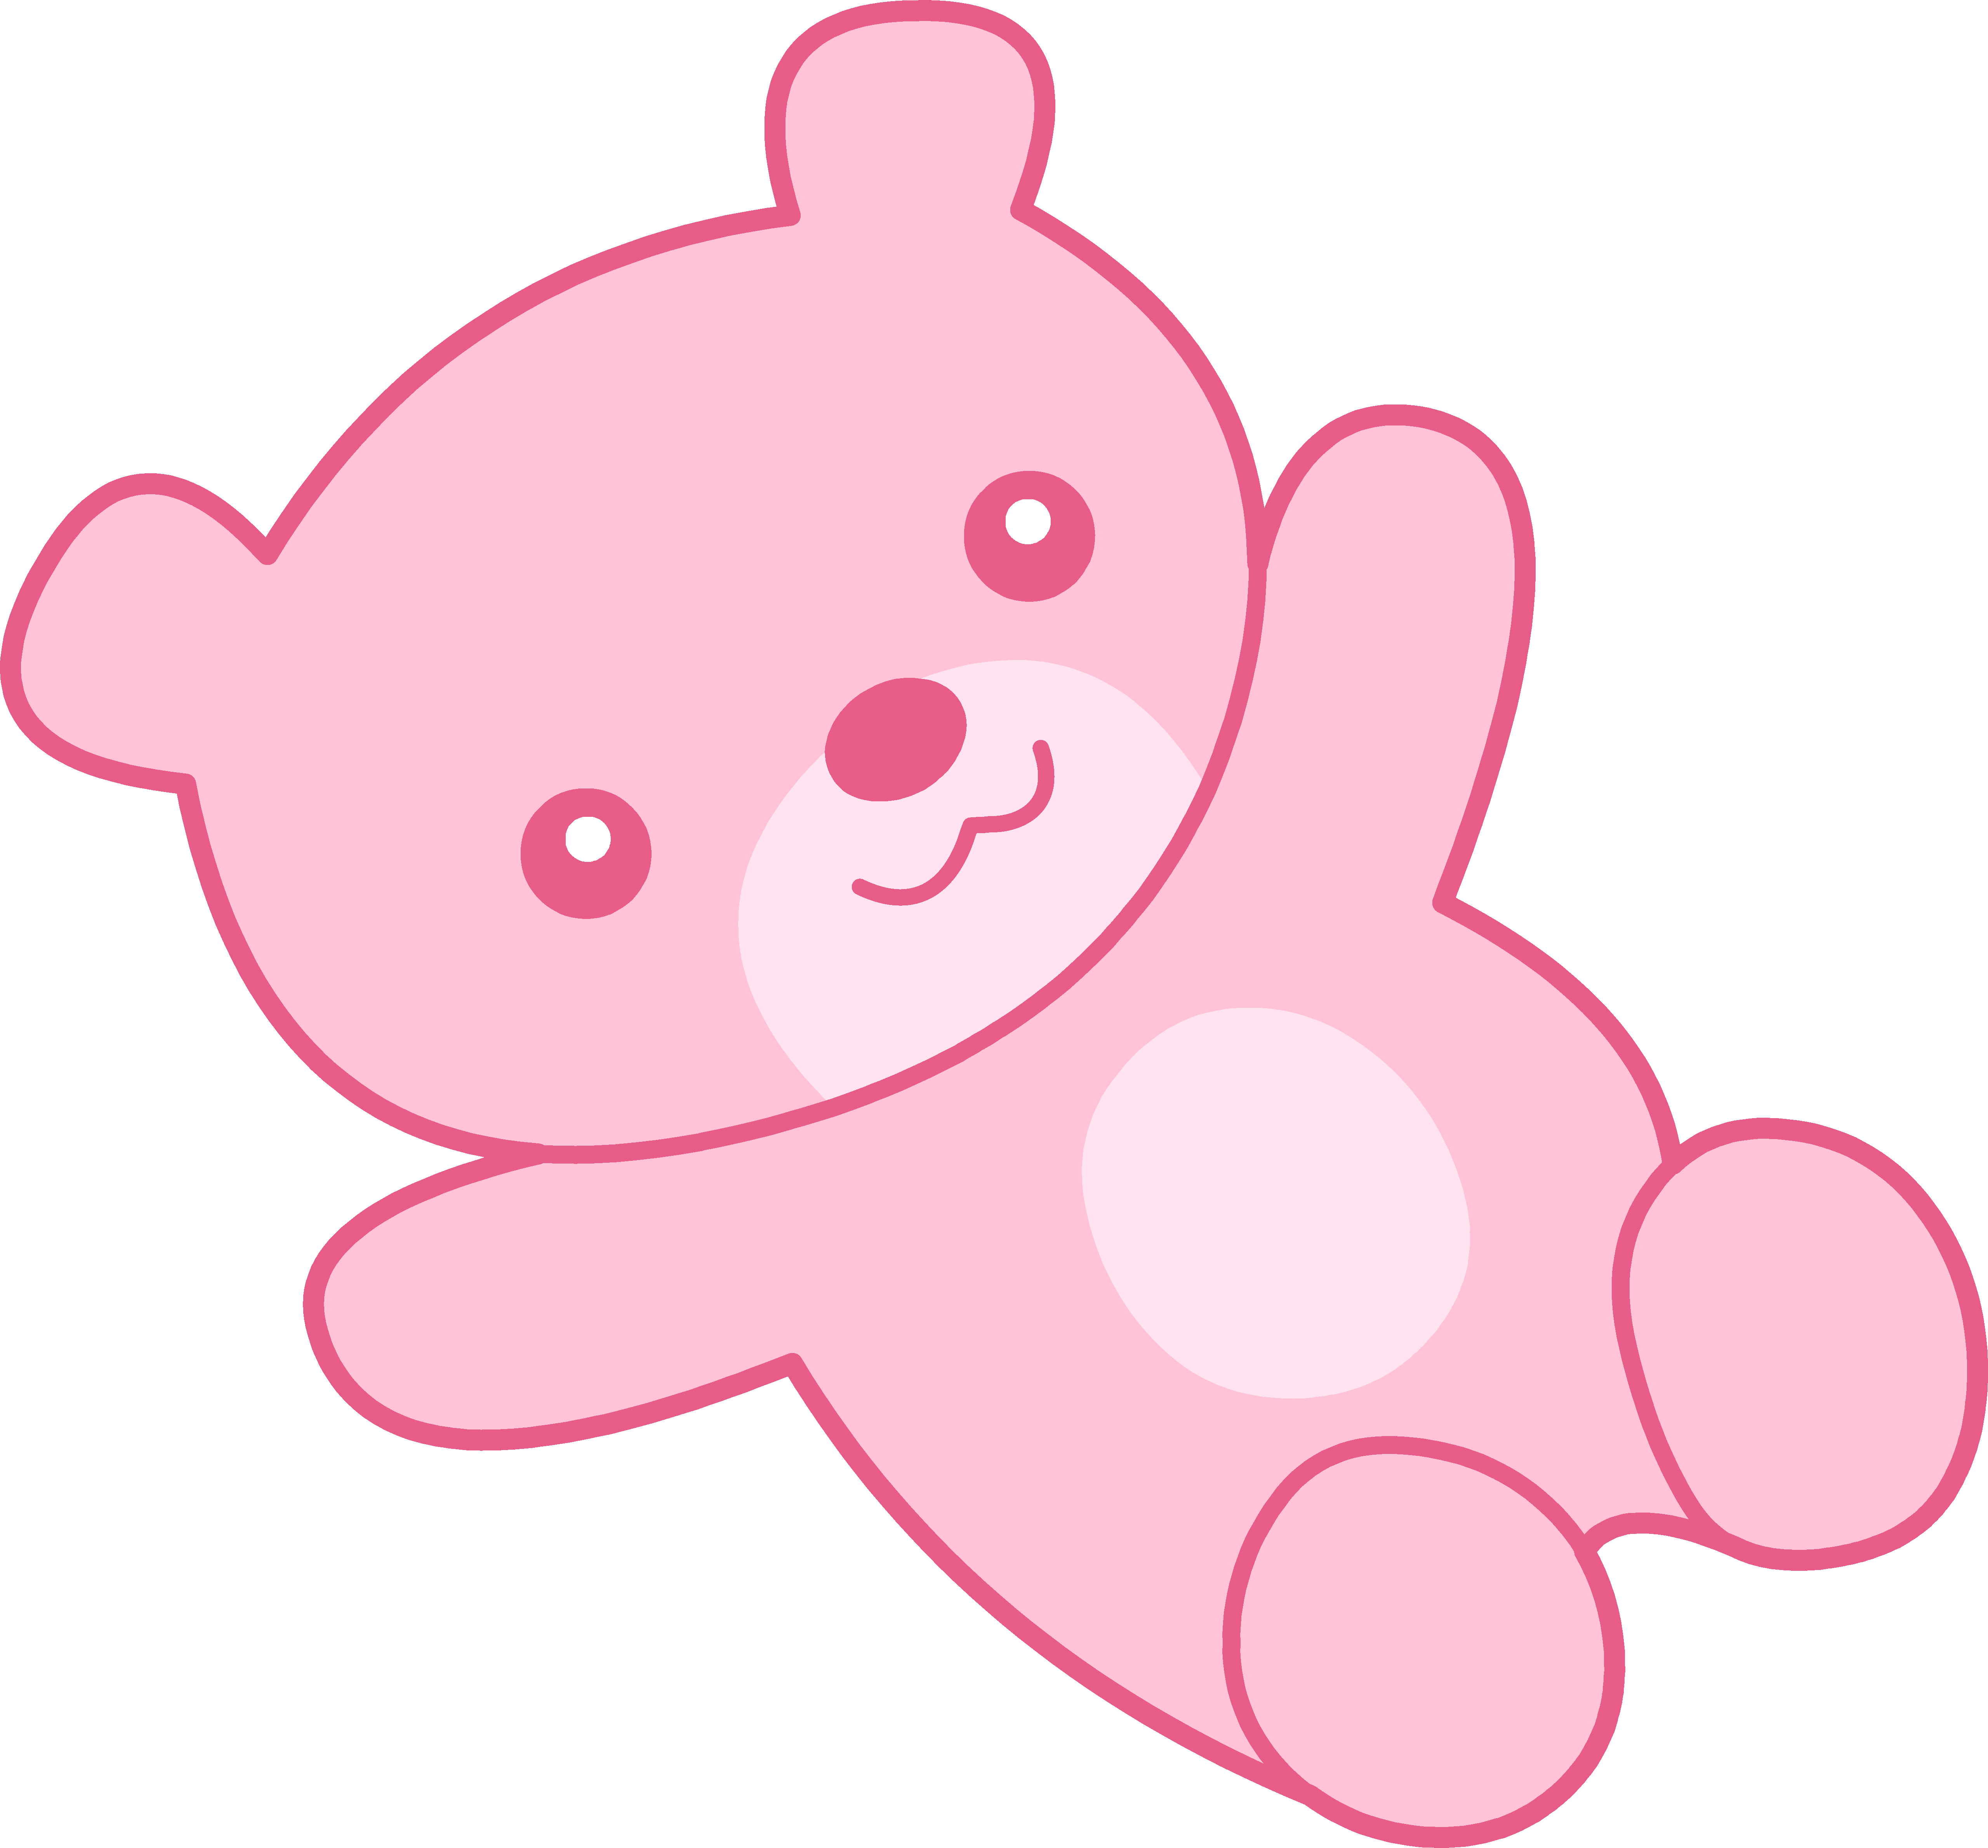 Clipart toys kawaii. Cute pink teddy bear